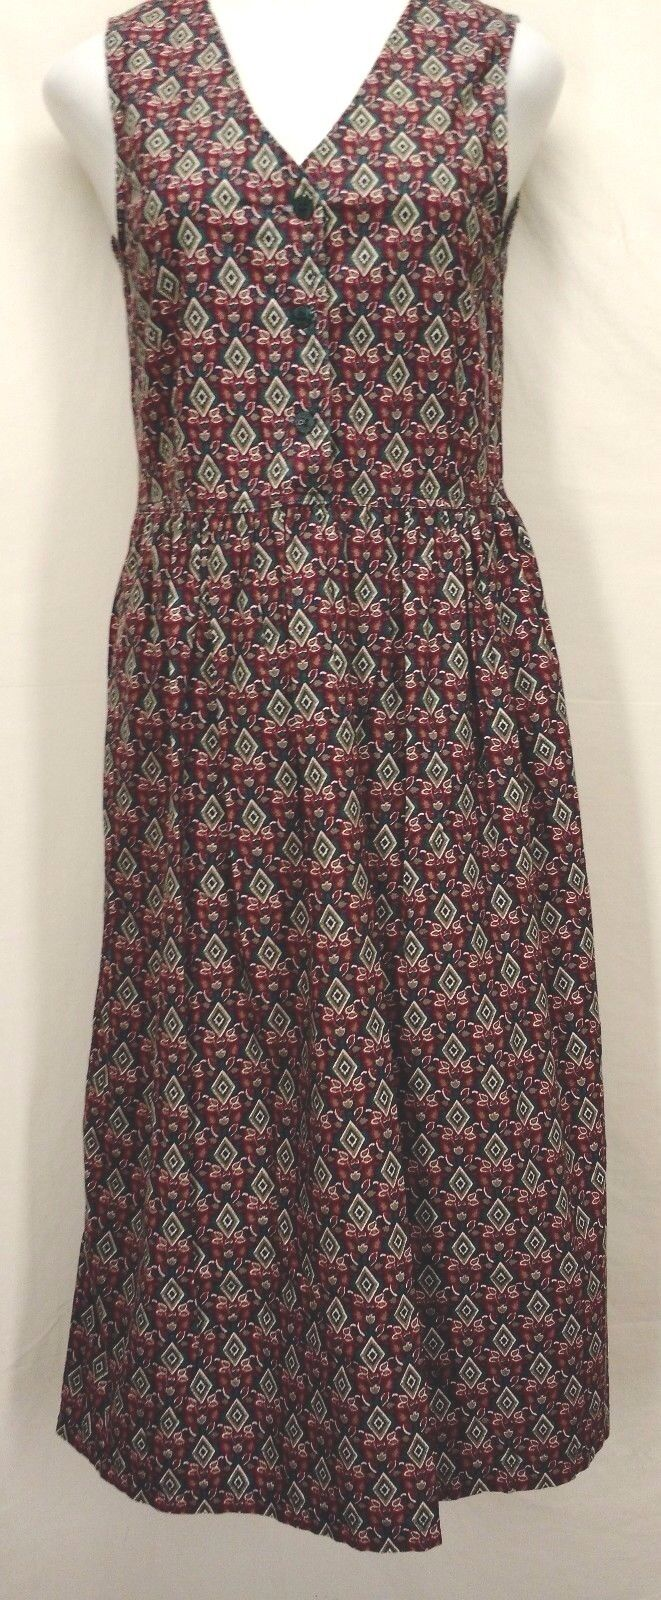 255f764c140 Details about WOOLRICH Womens Red Green 100% Cotton Dress Casual Career  Size Small S